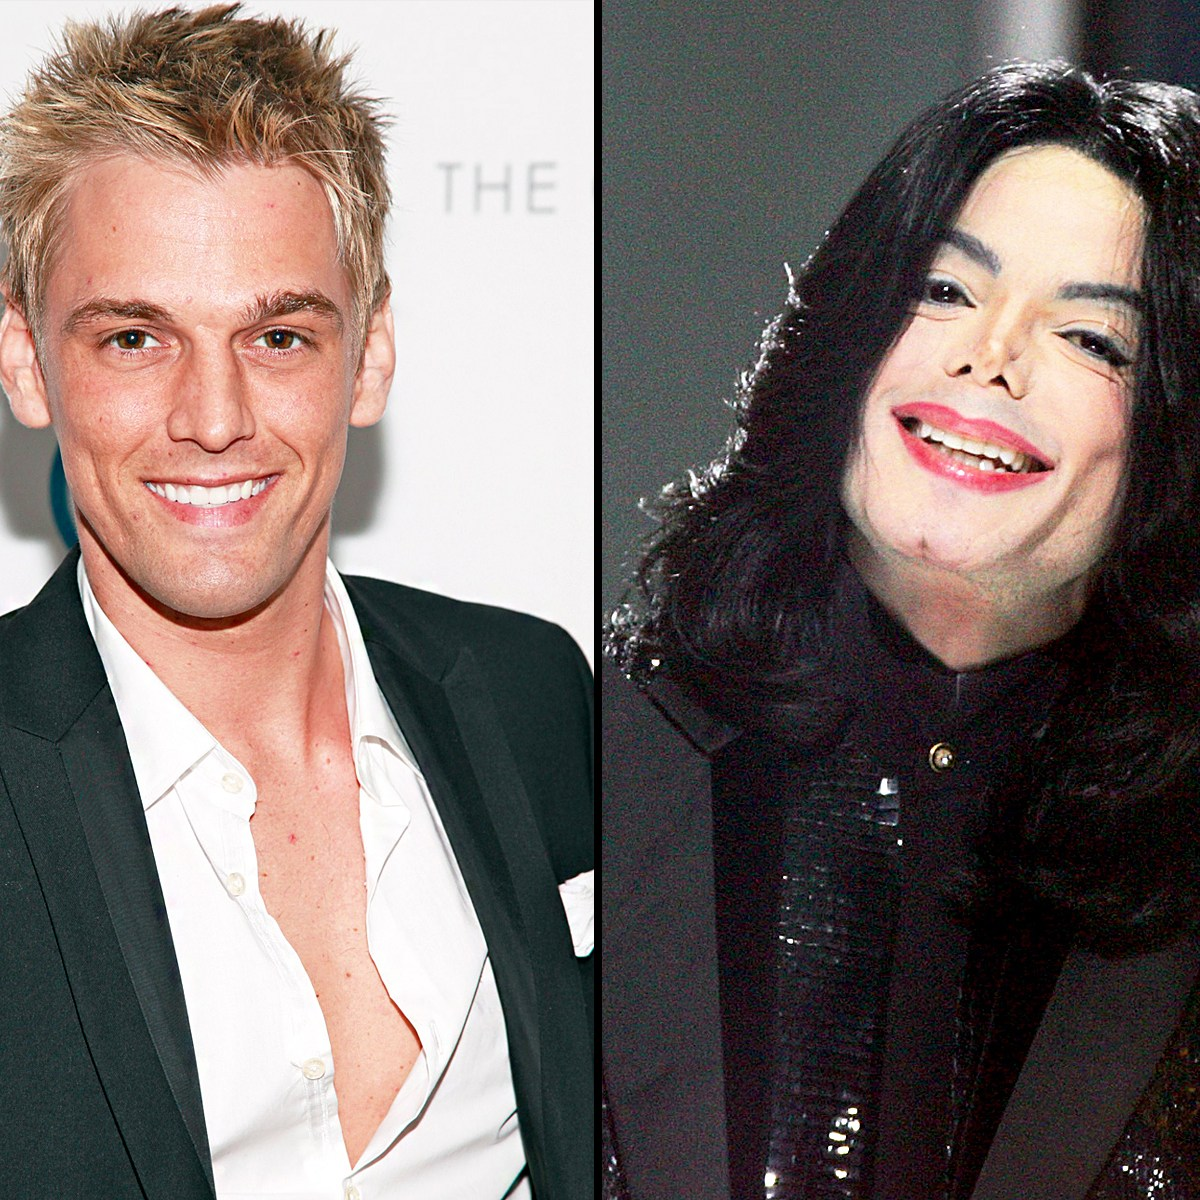 Aaron Carter and Michael Jackson